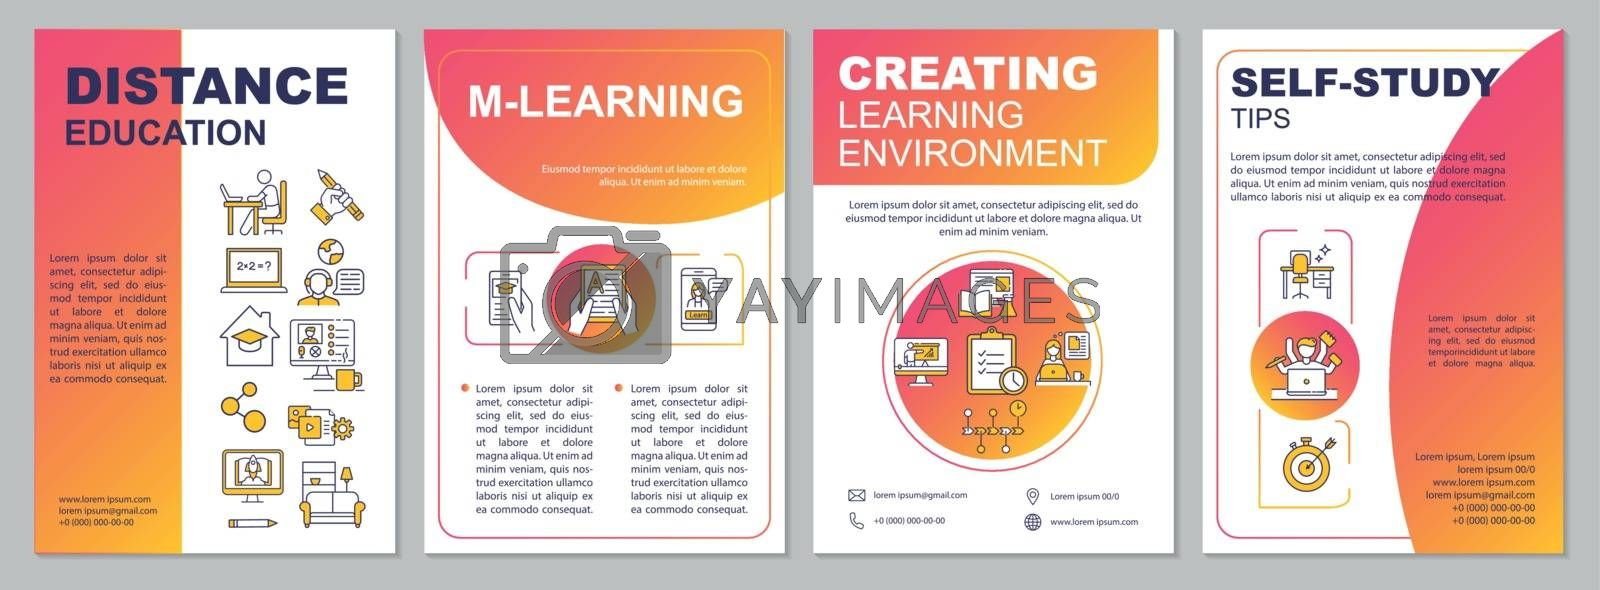 Online education brochure template. Mlearning. Self study. Flyer, booklet, leaflet print, cover design with linear icons. Vector layouts for magazines, annual reports, advertising posters